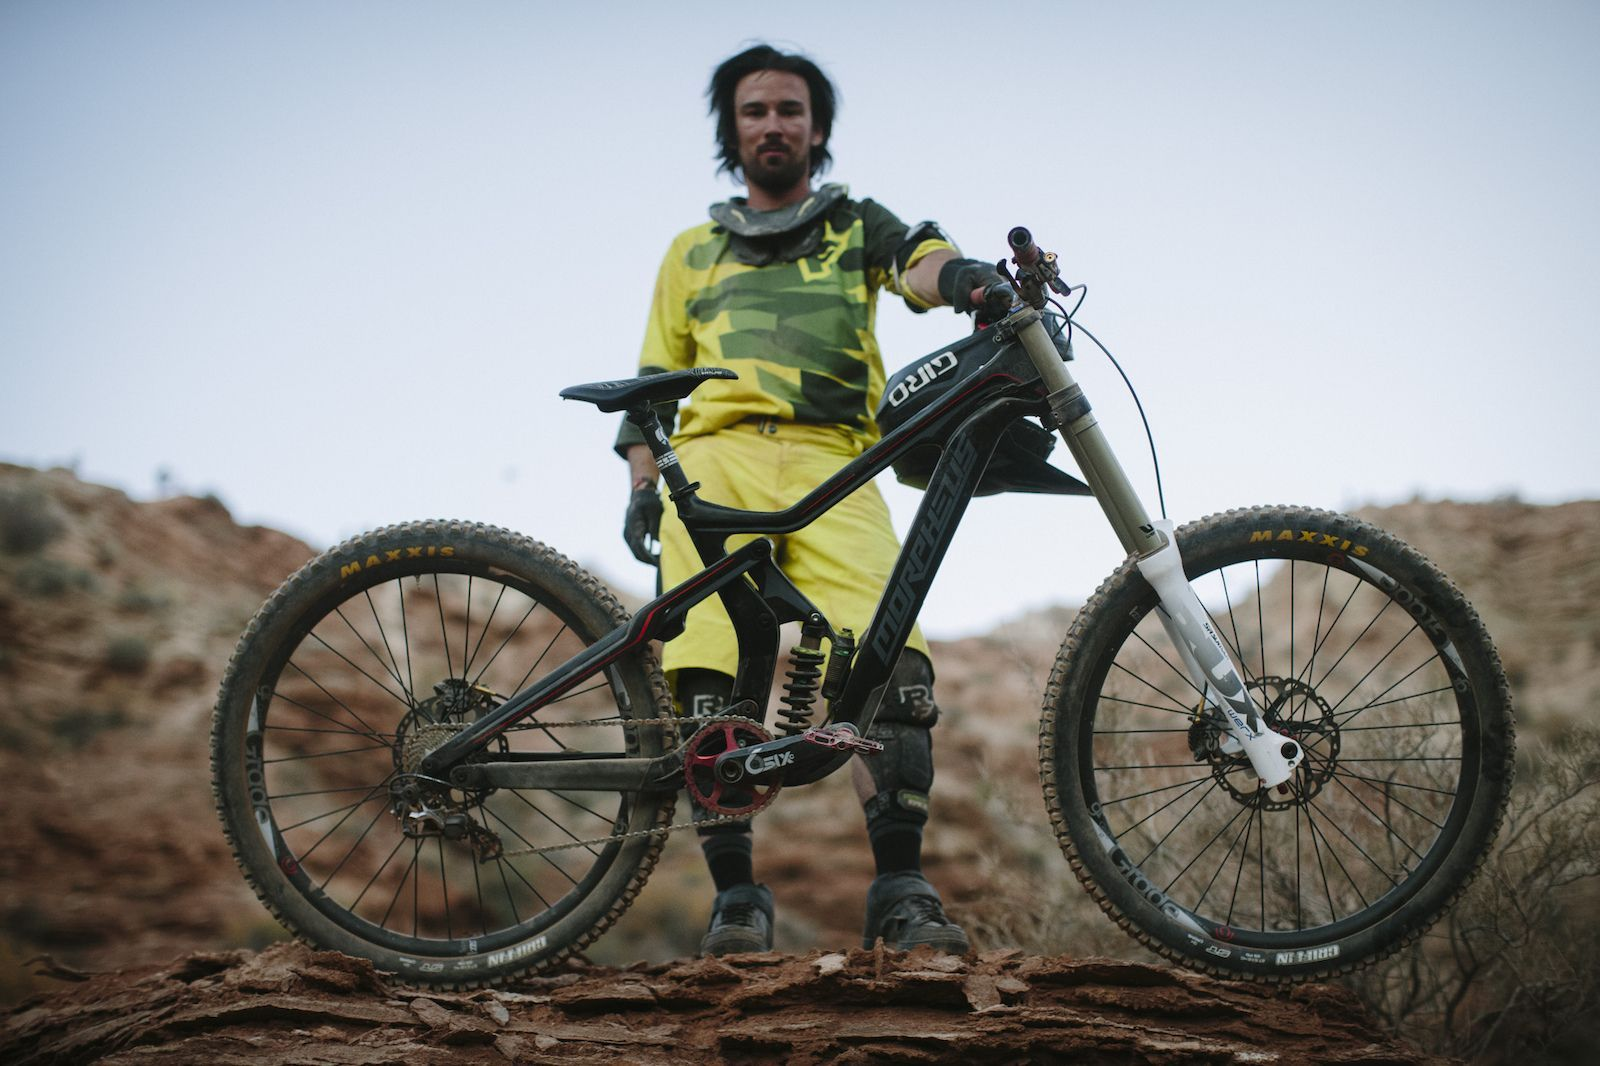 38 Bikes From Red Bull Rampage 2015 #utahusa Mitch Chubey at RedBull Rampage 2015 Virgin Utah USA #utahusa